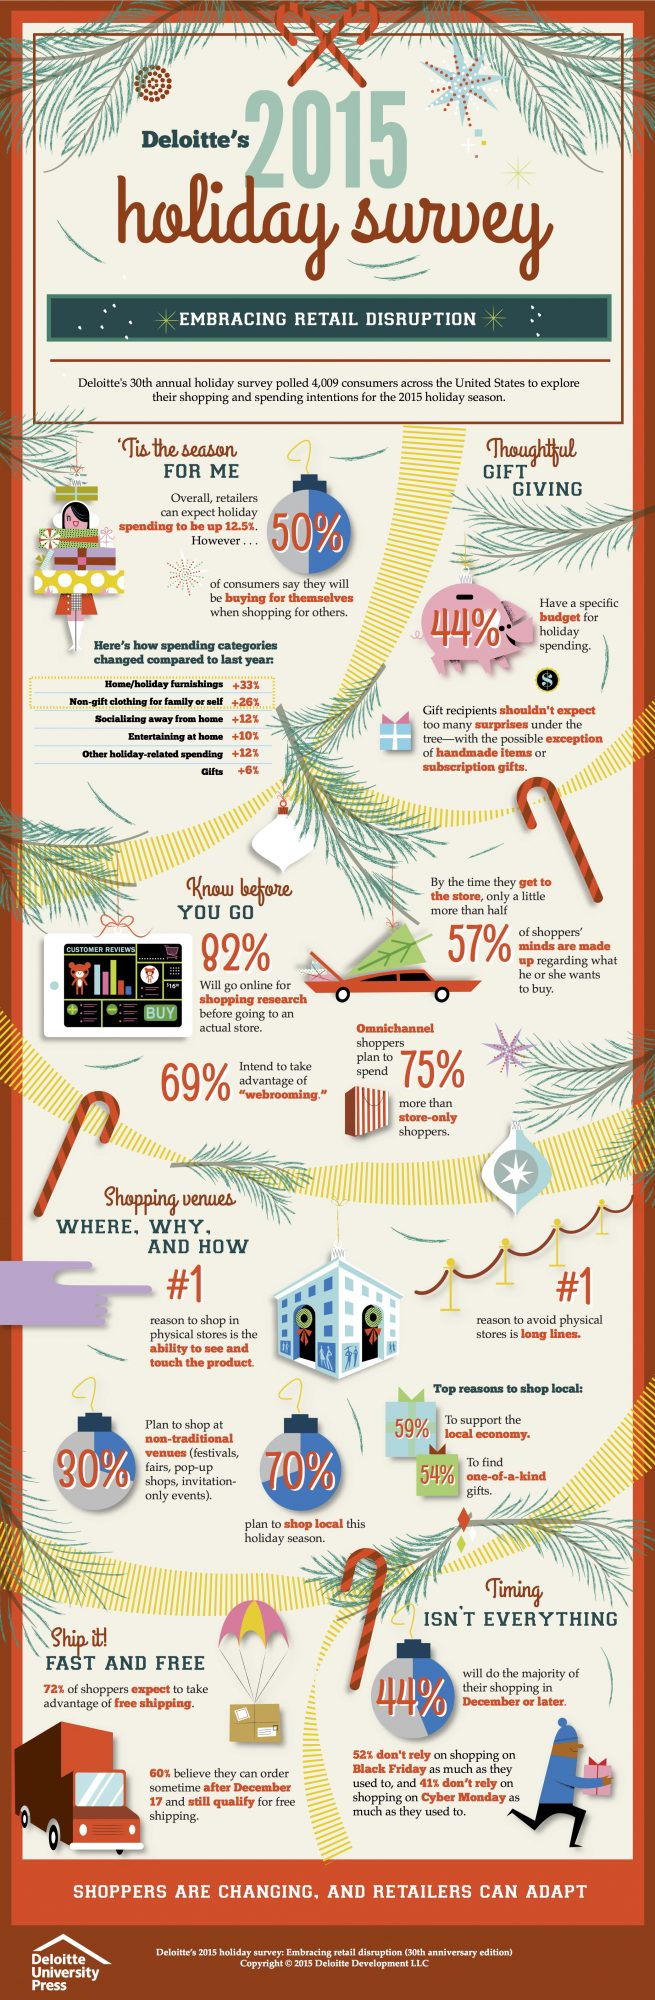 deloitte holiday infographic